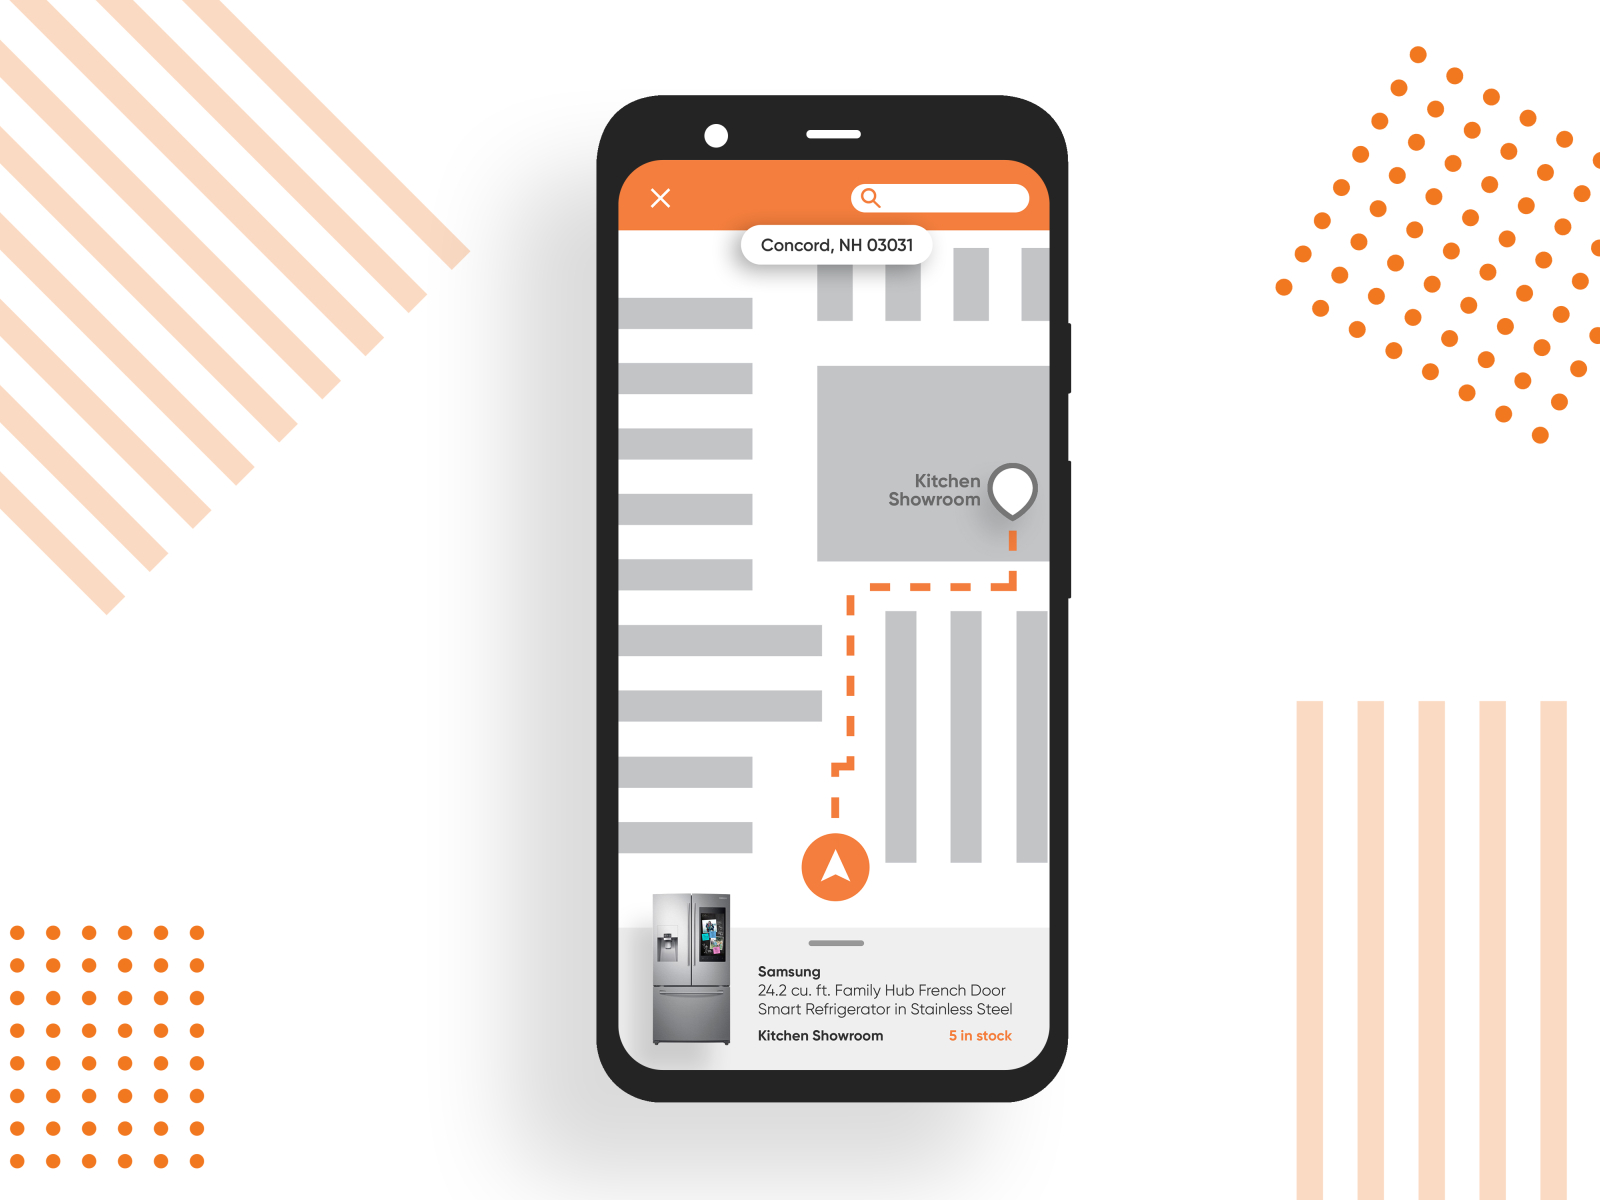 Home Depot Store Map By Landon Campbell On Dribbble